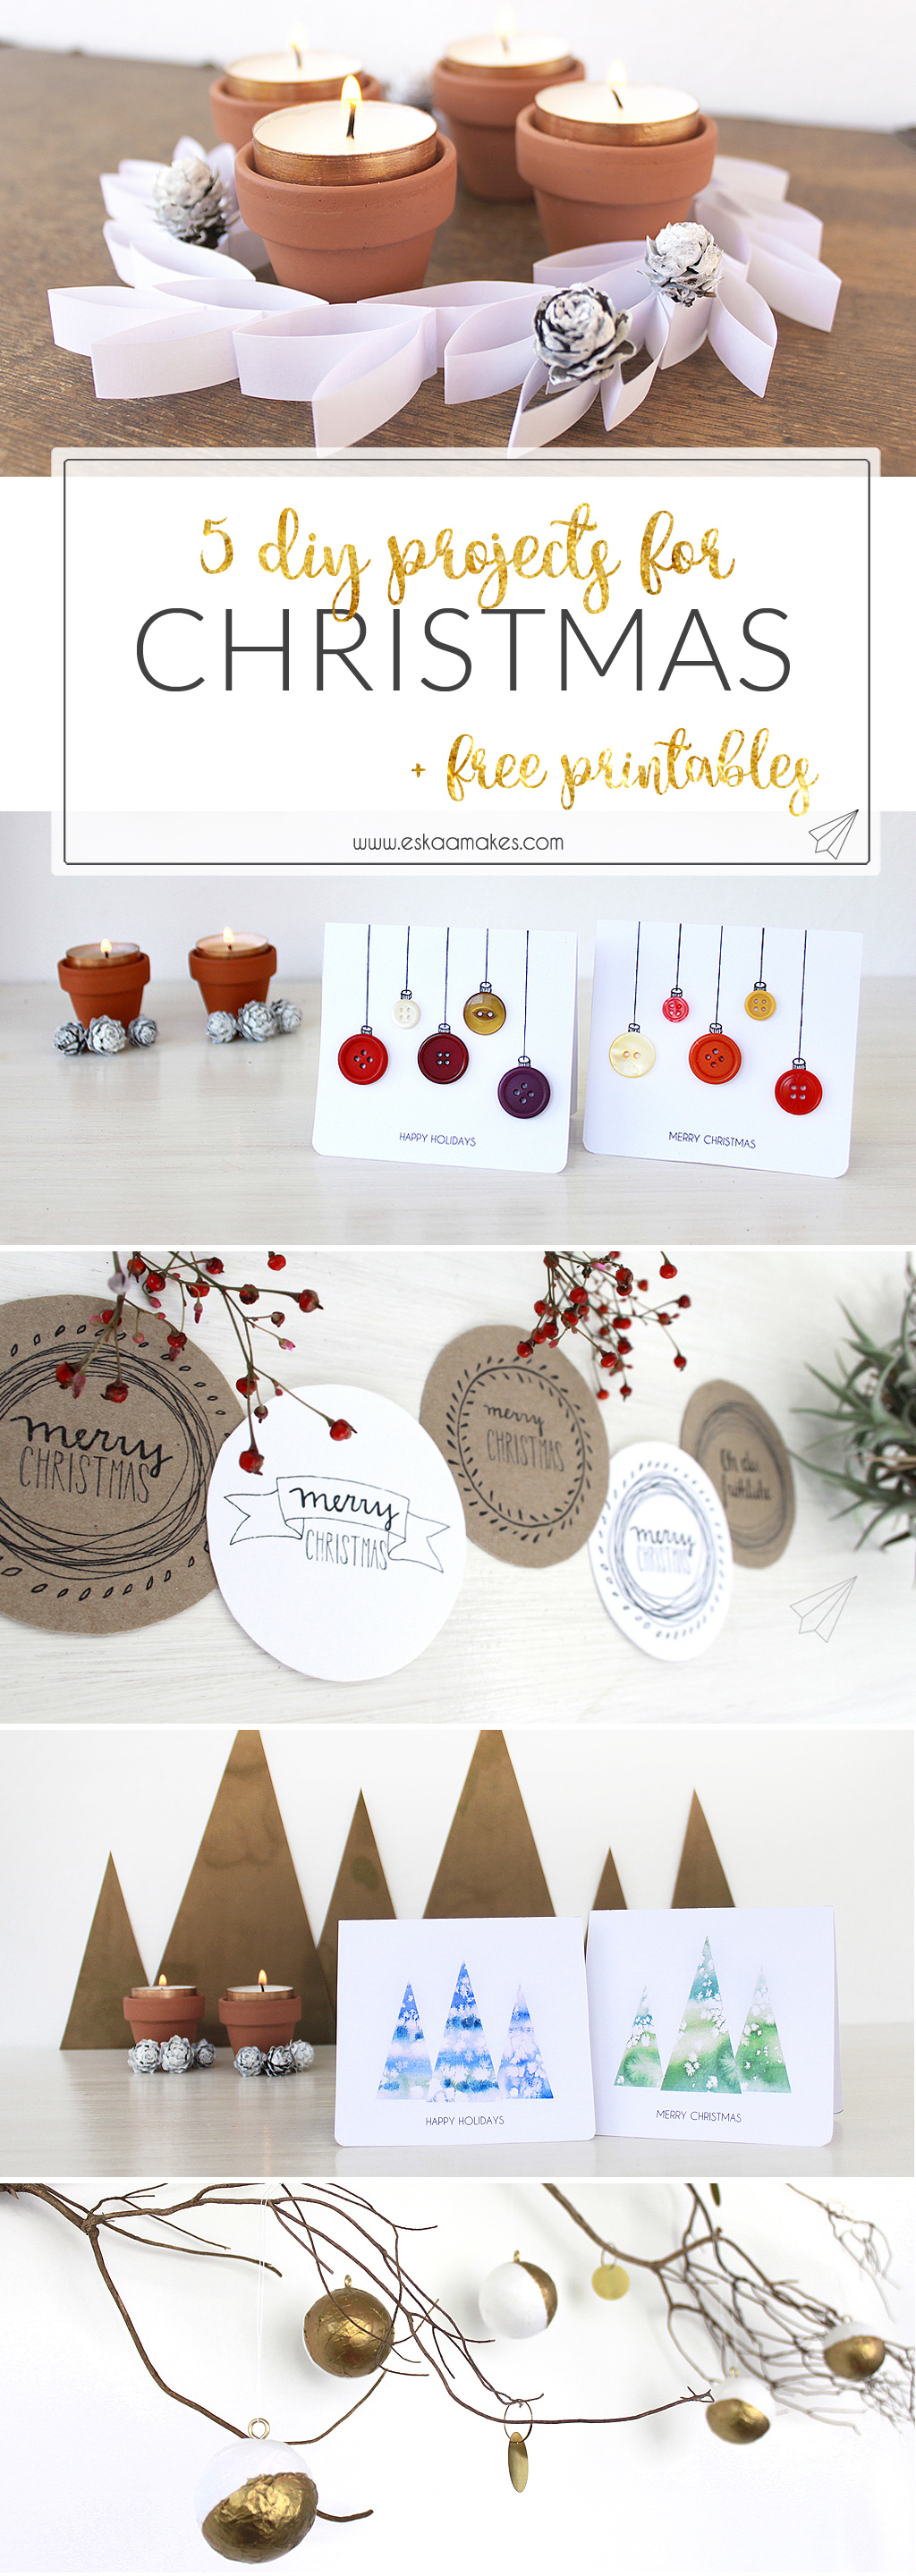 diy-and-printables-for-christmas-roundup-title